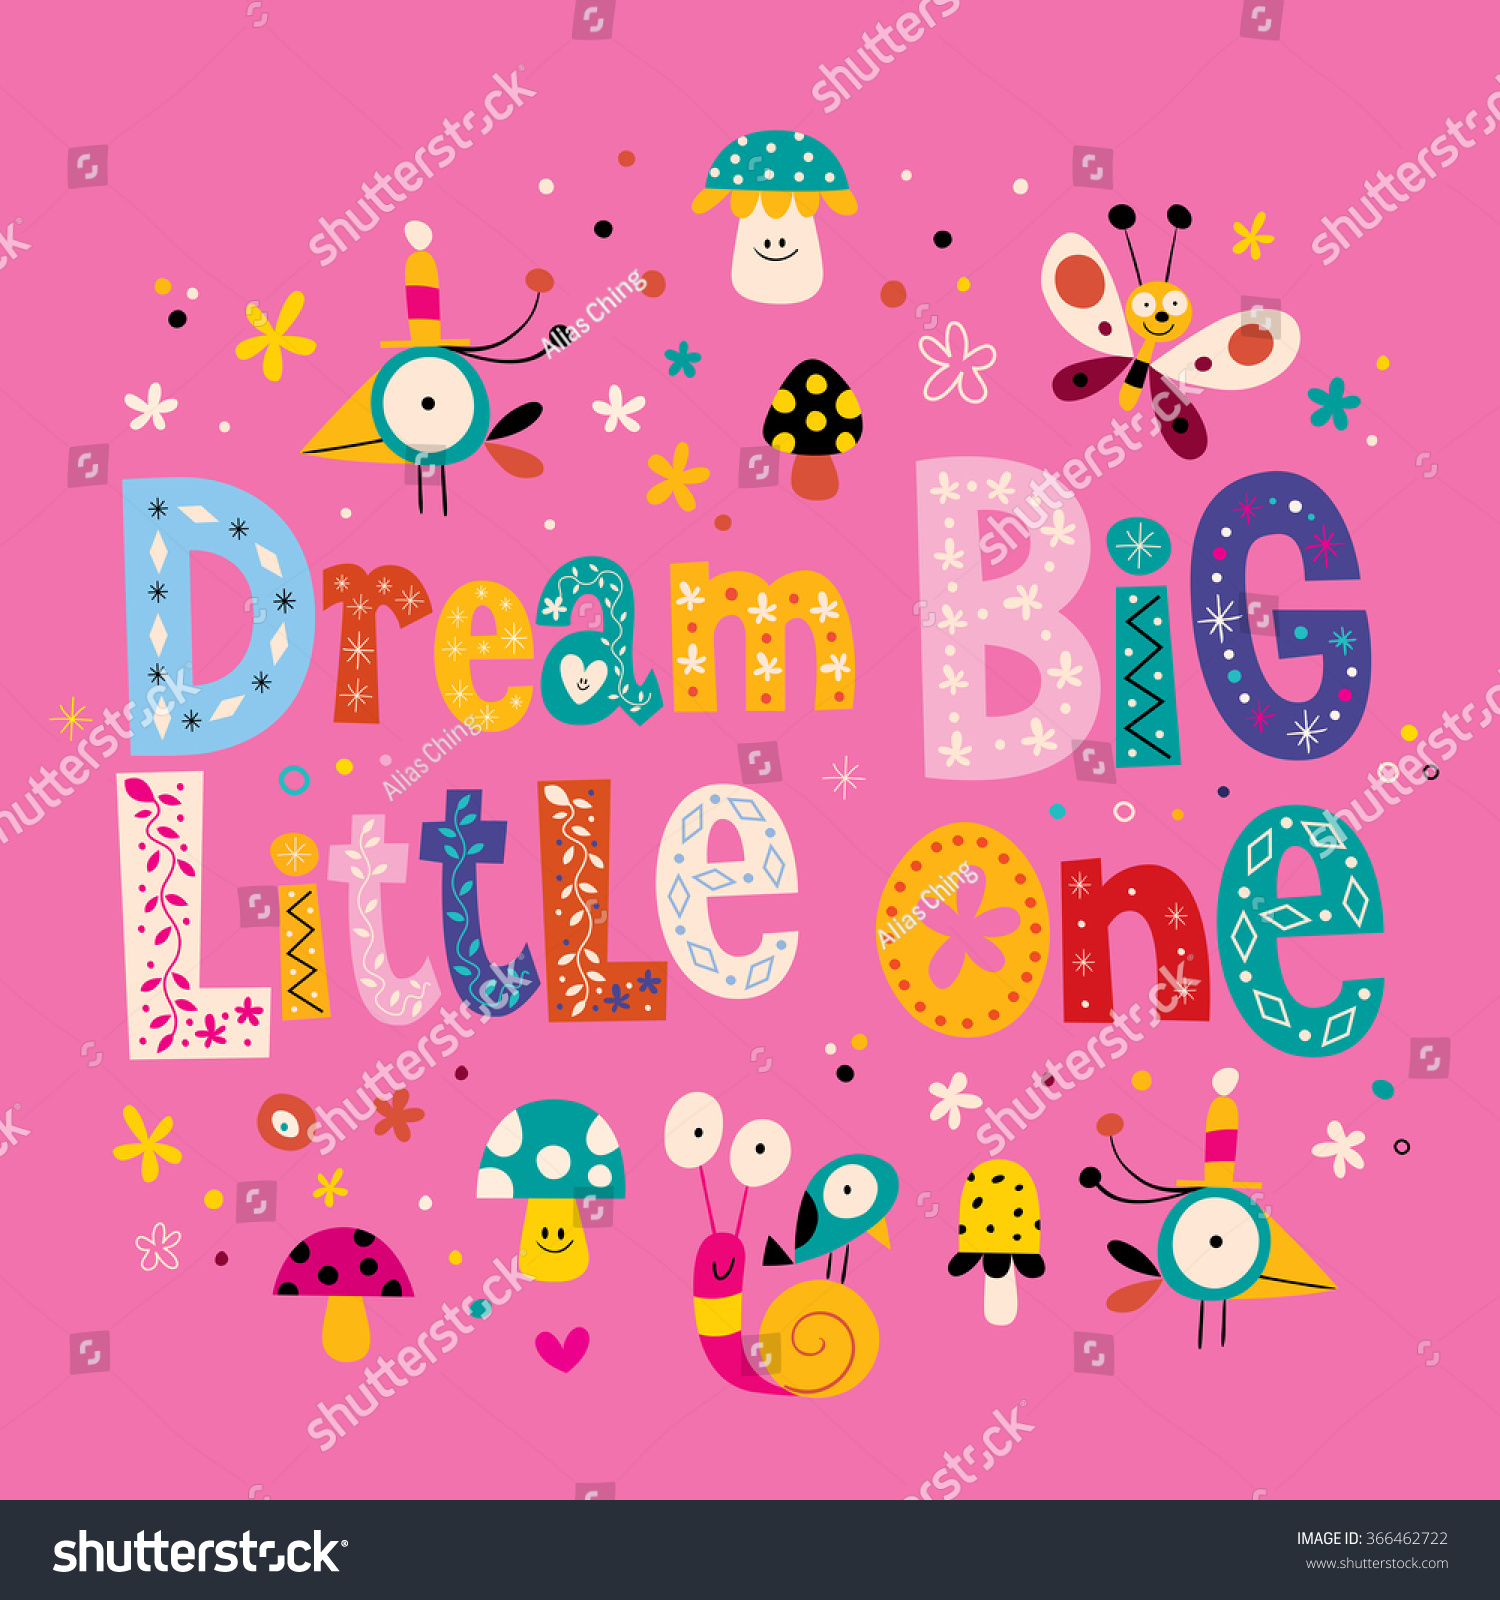 Dream big little one quote baby room wall nursery room wall decoration nursery wall art